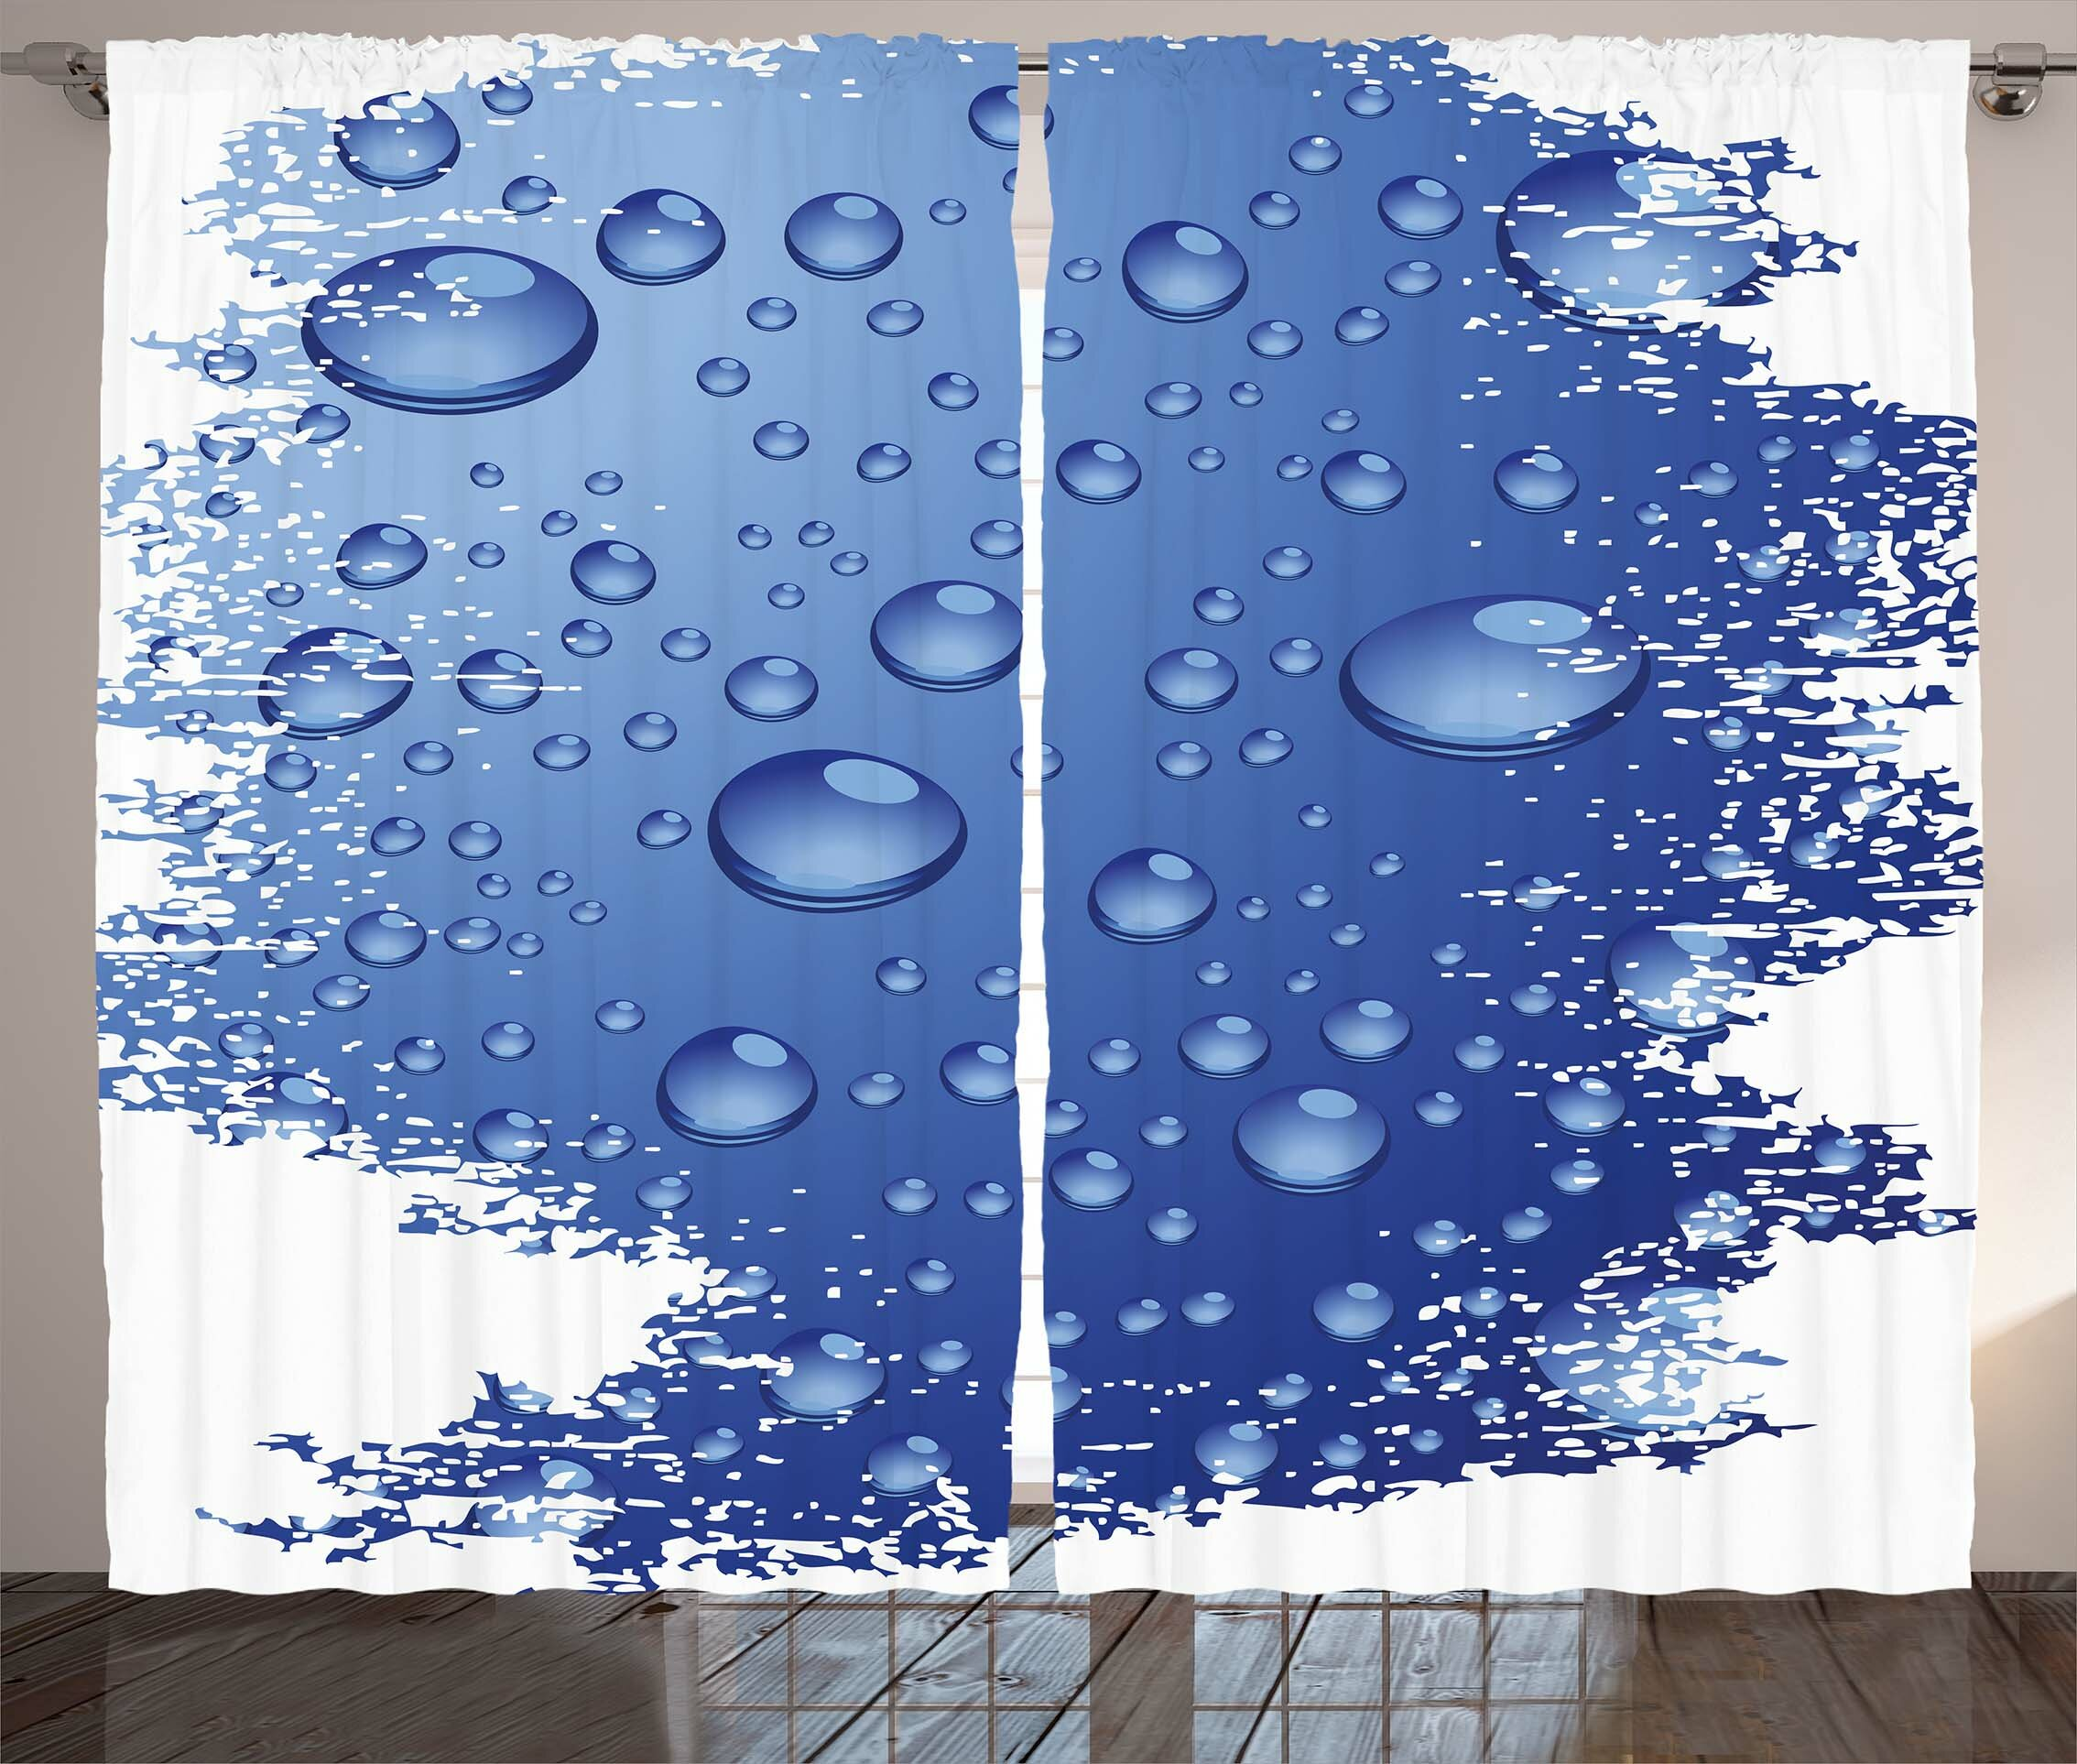 Grunge Wet Surface Inspired Bubble Water Rain Drop Crystals Freshness  Symbol Artsy Design Graphic Print & Text Semi-Sheer Rod Pocket Curtain  Panels